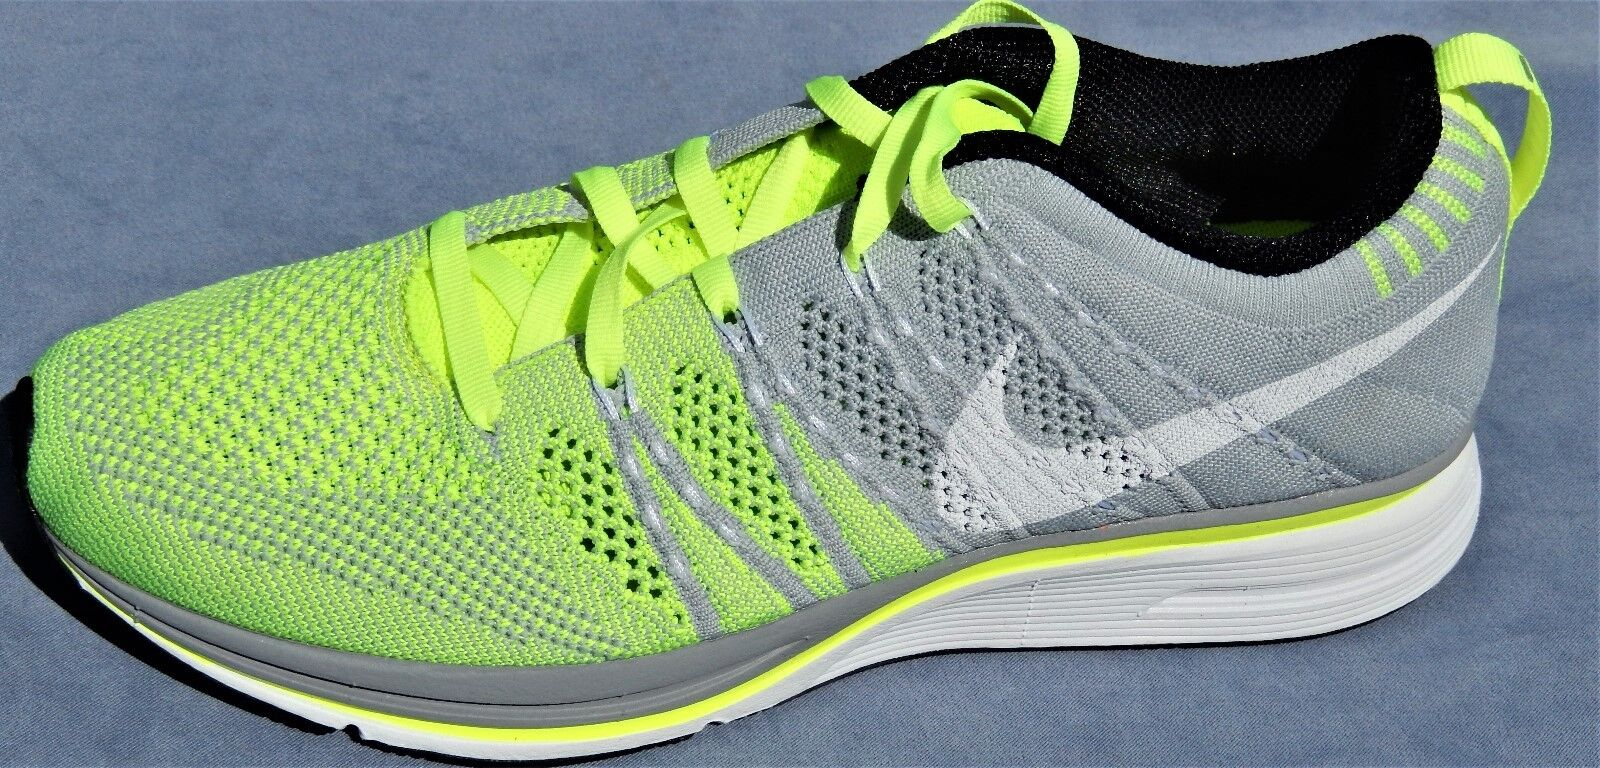 NEW 2013 NIKE FLYKNIT TRAINER +MENS SIZE 9.5 532984-714 WOMENS 11 VOLT GREEN 532984-714 9.5 33f8c1